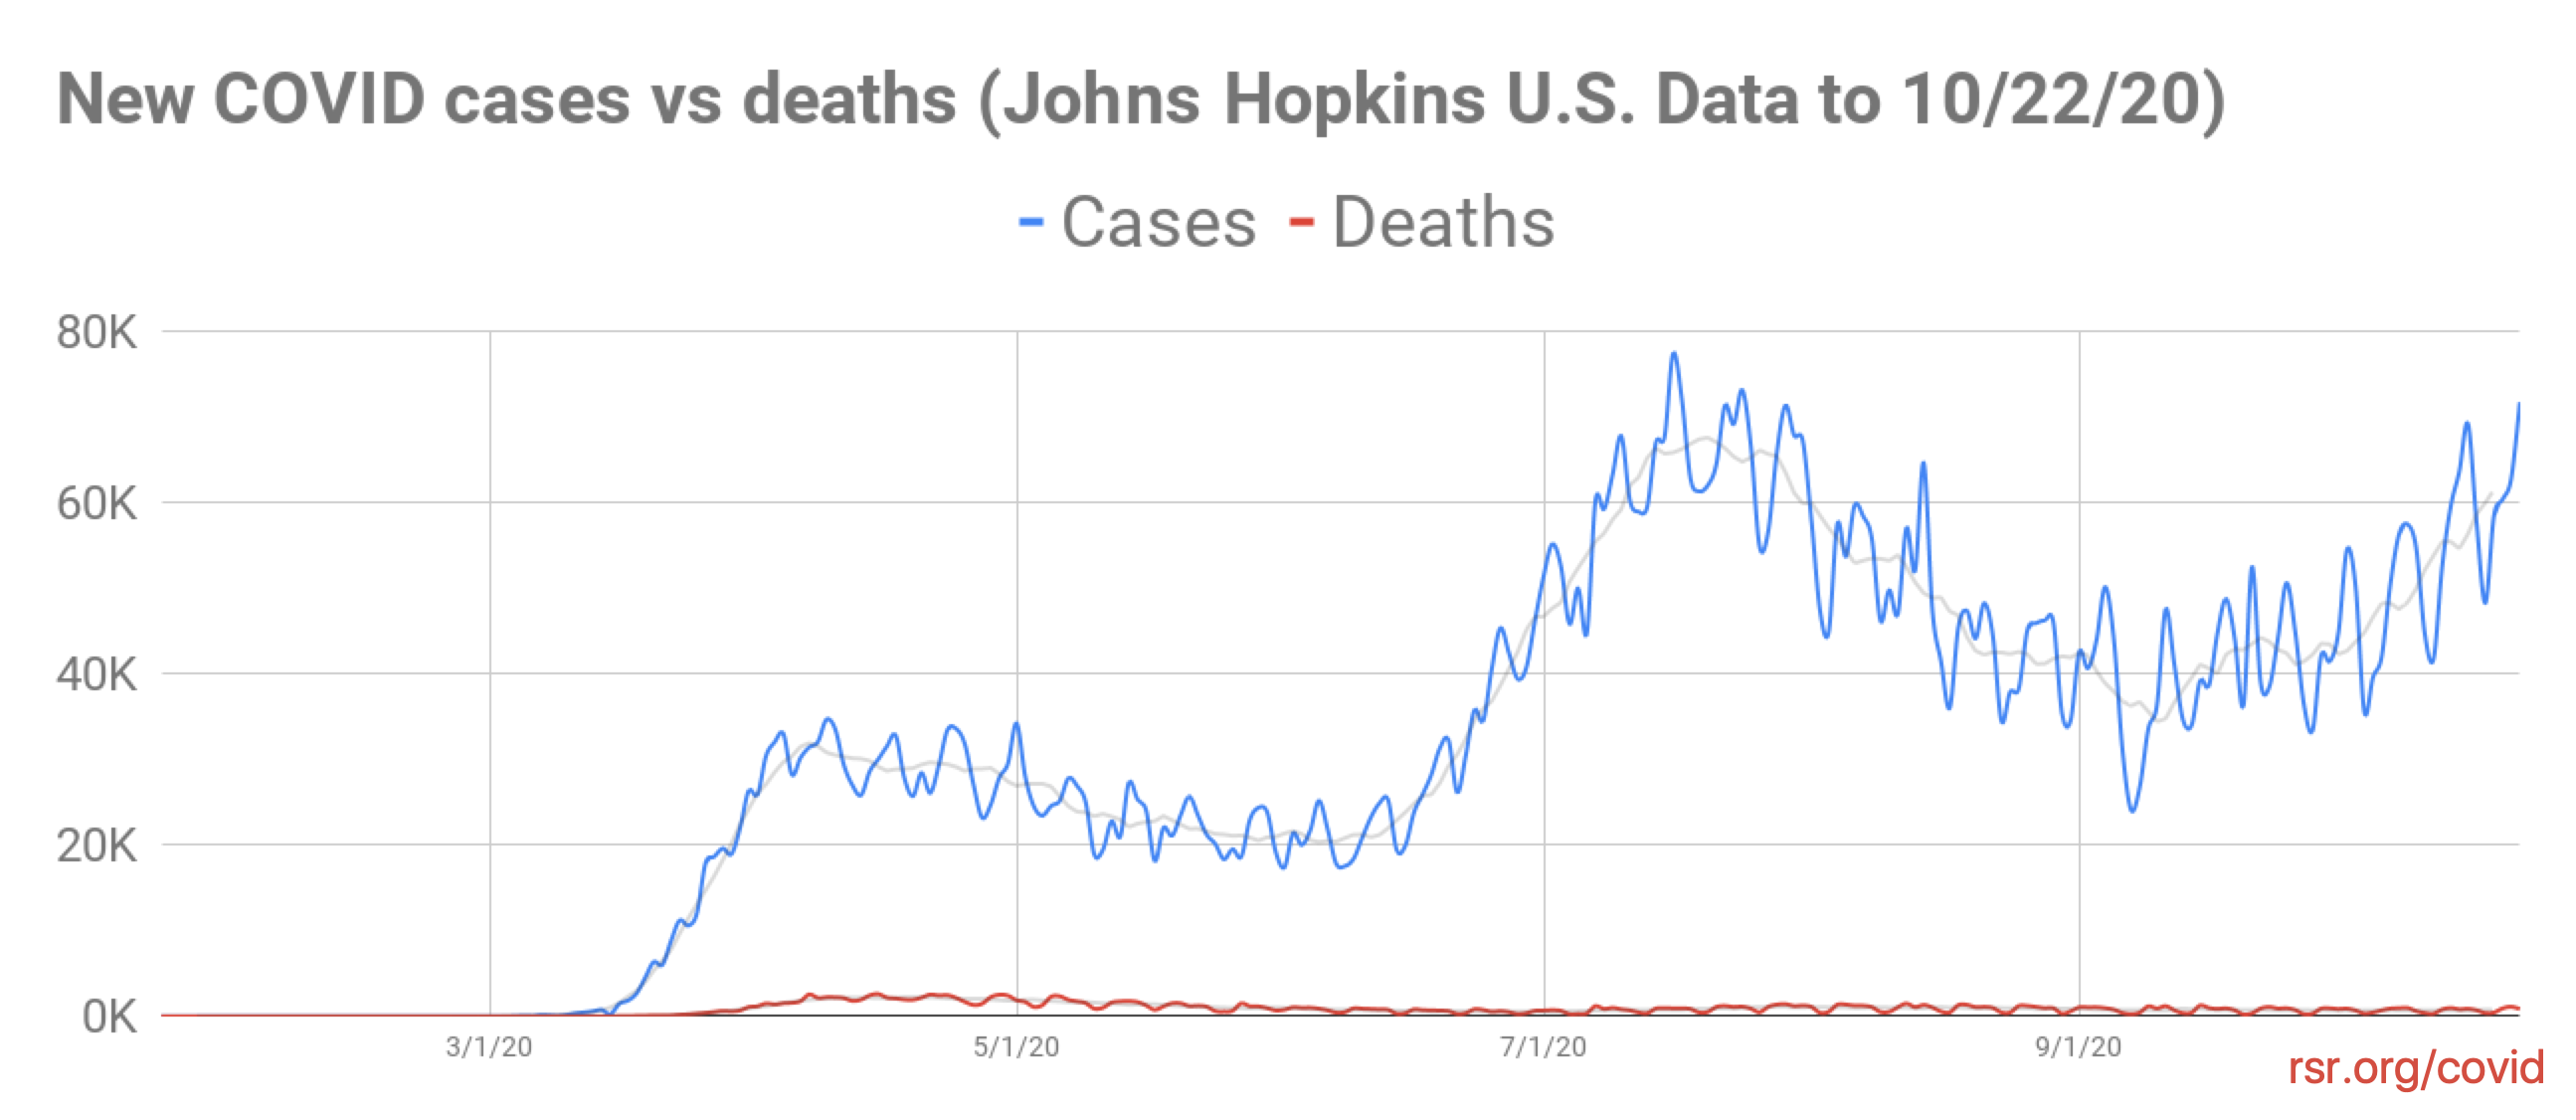 US COVID deaths charted against cases through 10/22/20 John Hopkins data